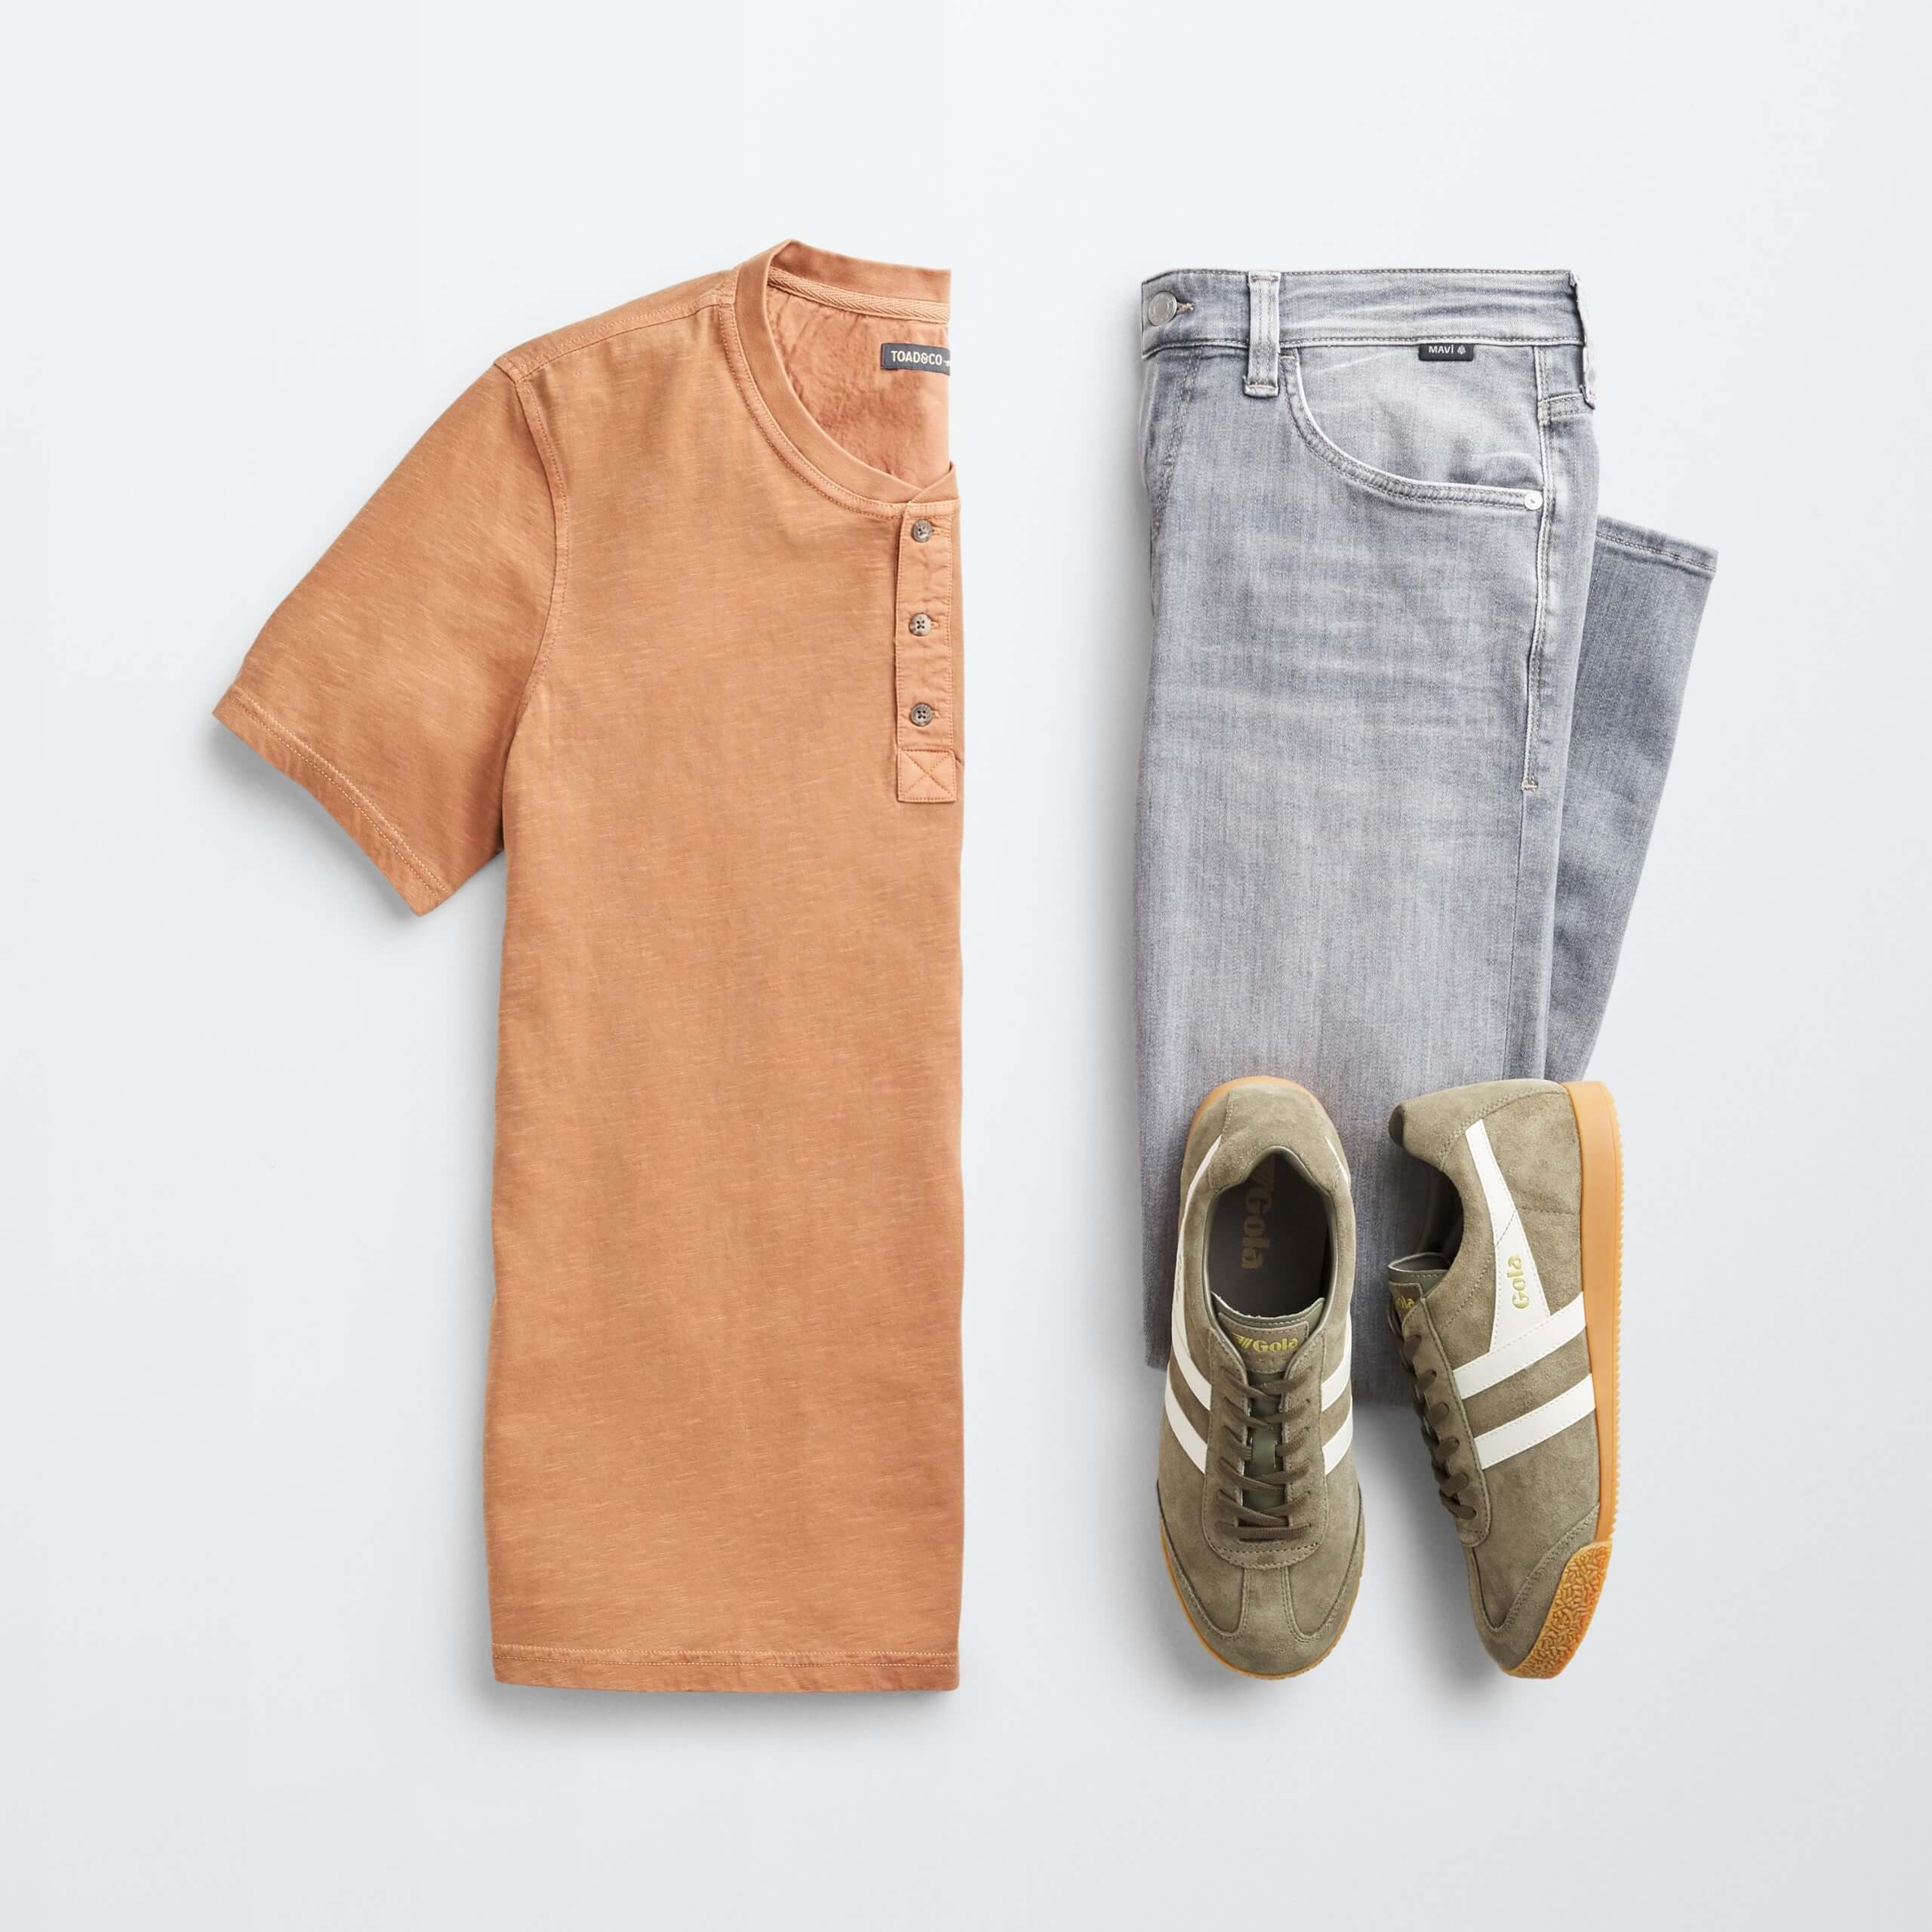 Stitch Fix Men's outfit laydown featuring orange henley shirt, grey jeans and olive green sneakers.